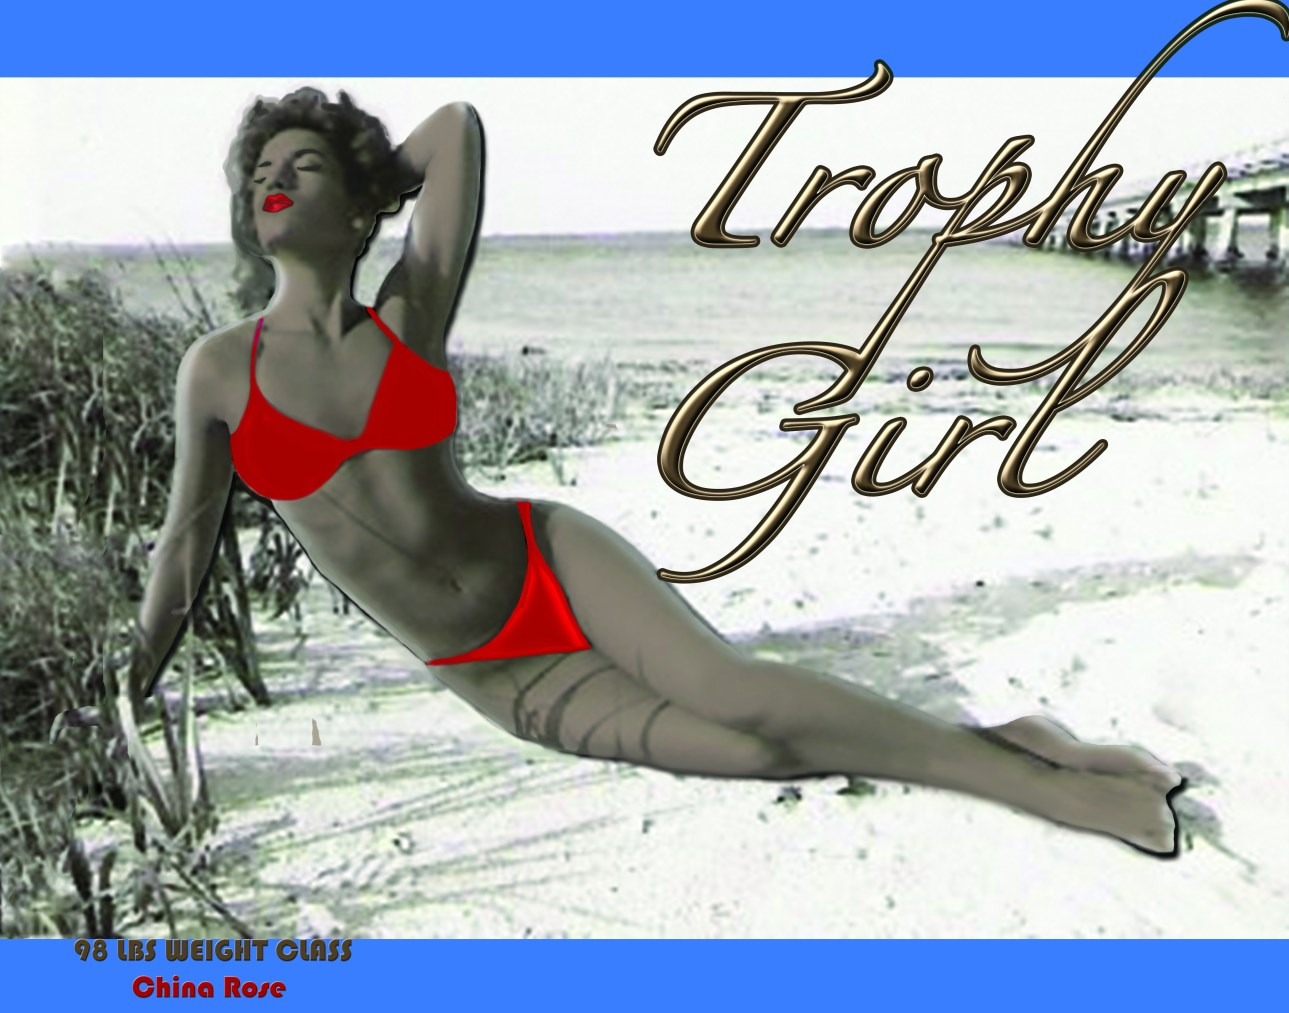 Trophy Girl | China Rose